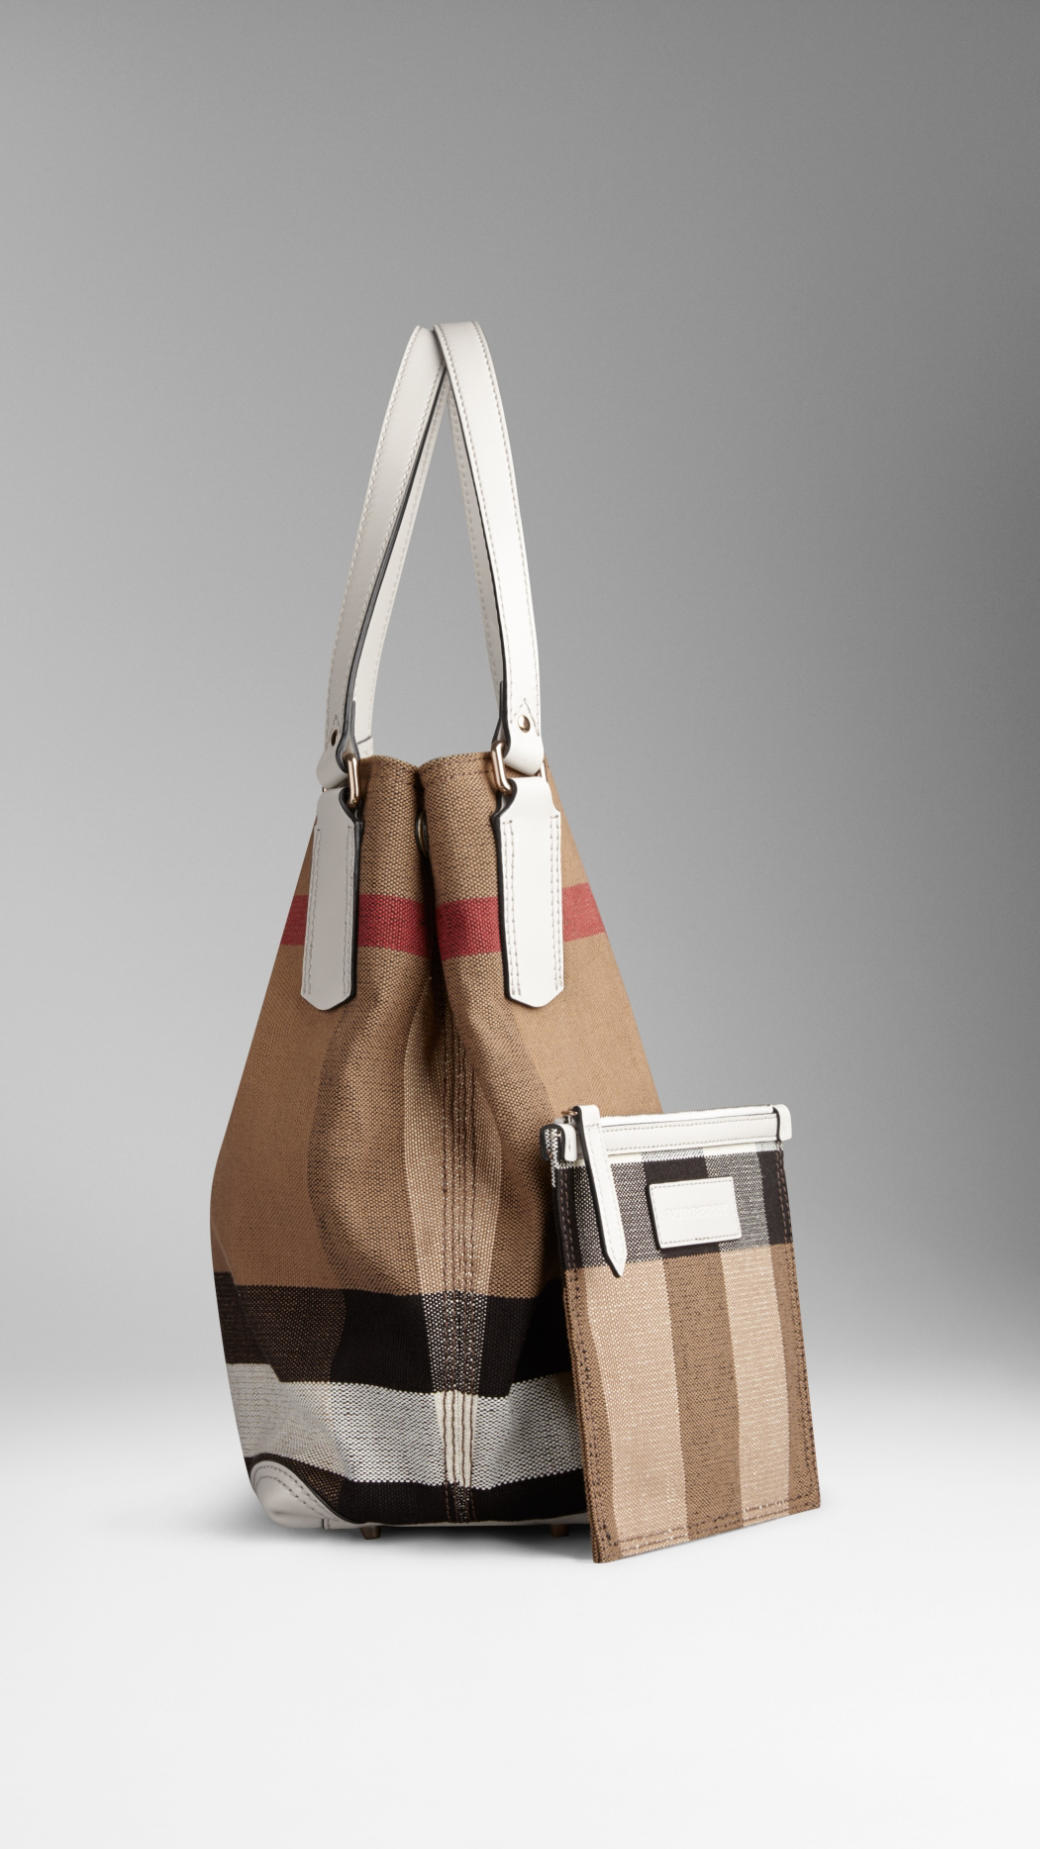 d1bf933182fd Lyst - Burberry Medium Canvas Check Tote Bag in White